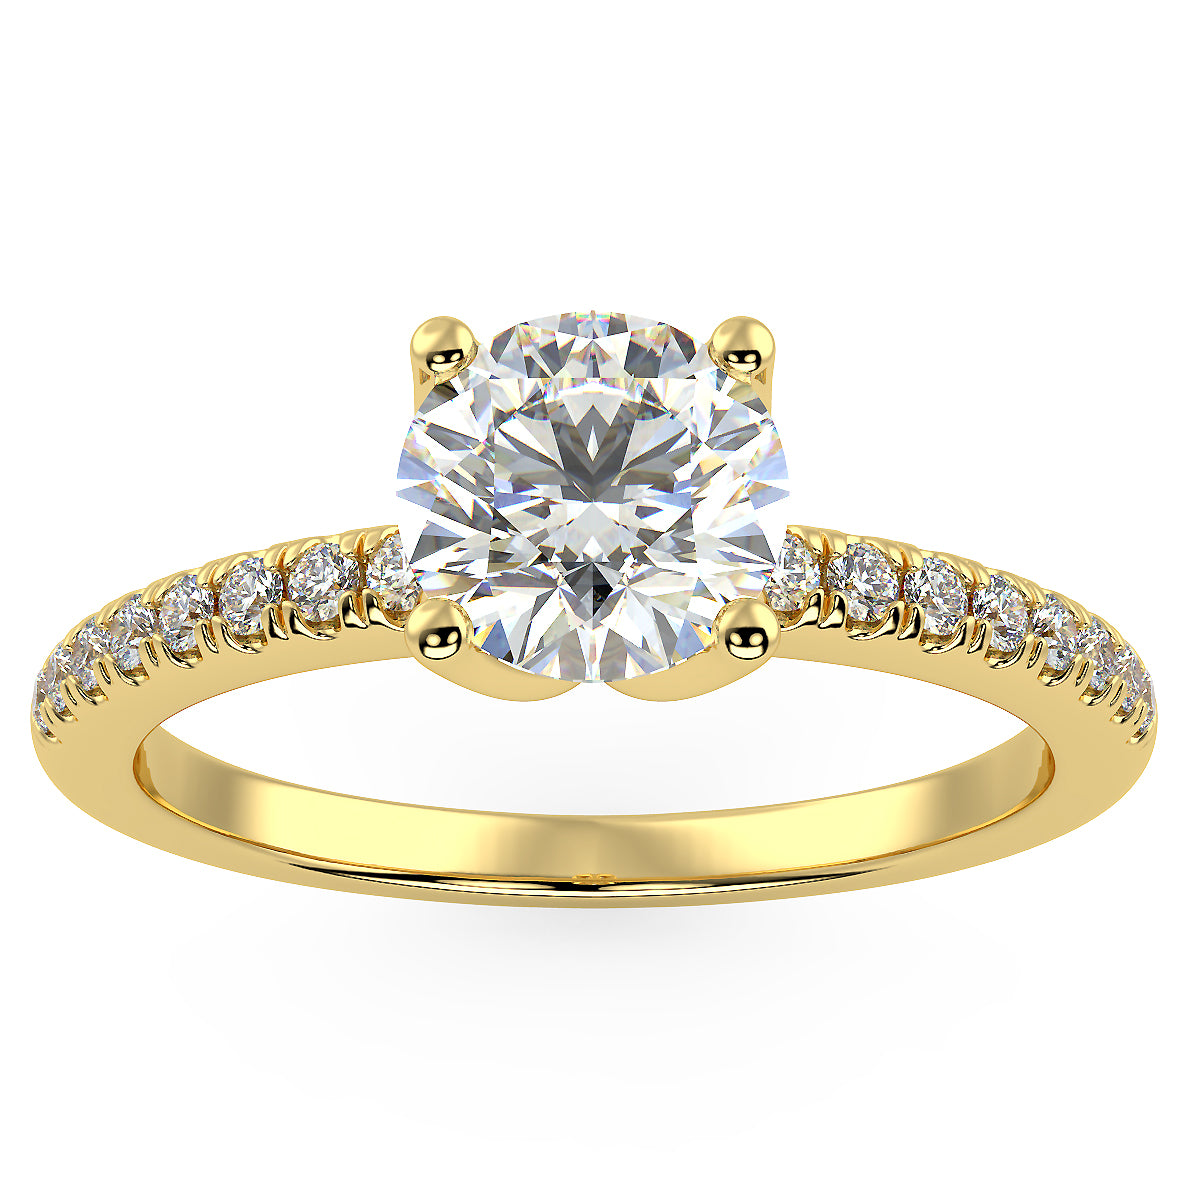 Altair Engagement Ring in Yellow Gold